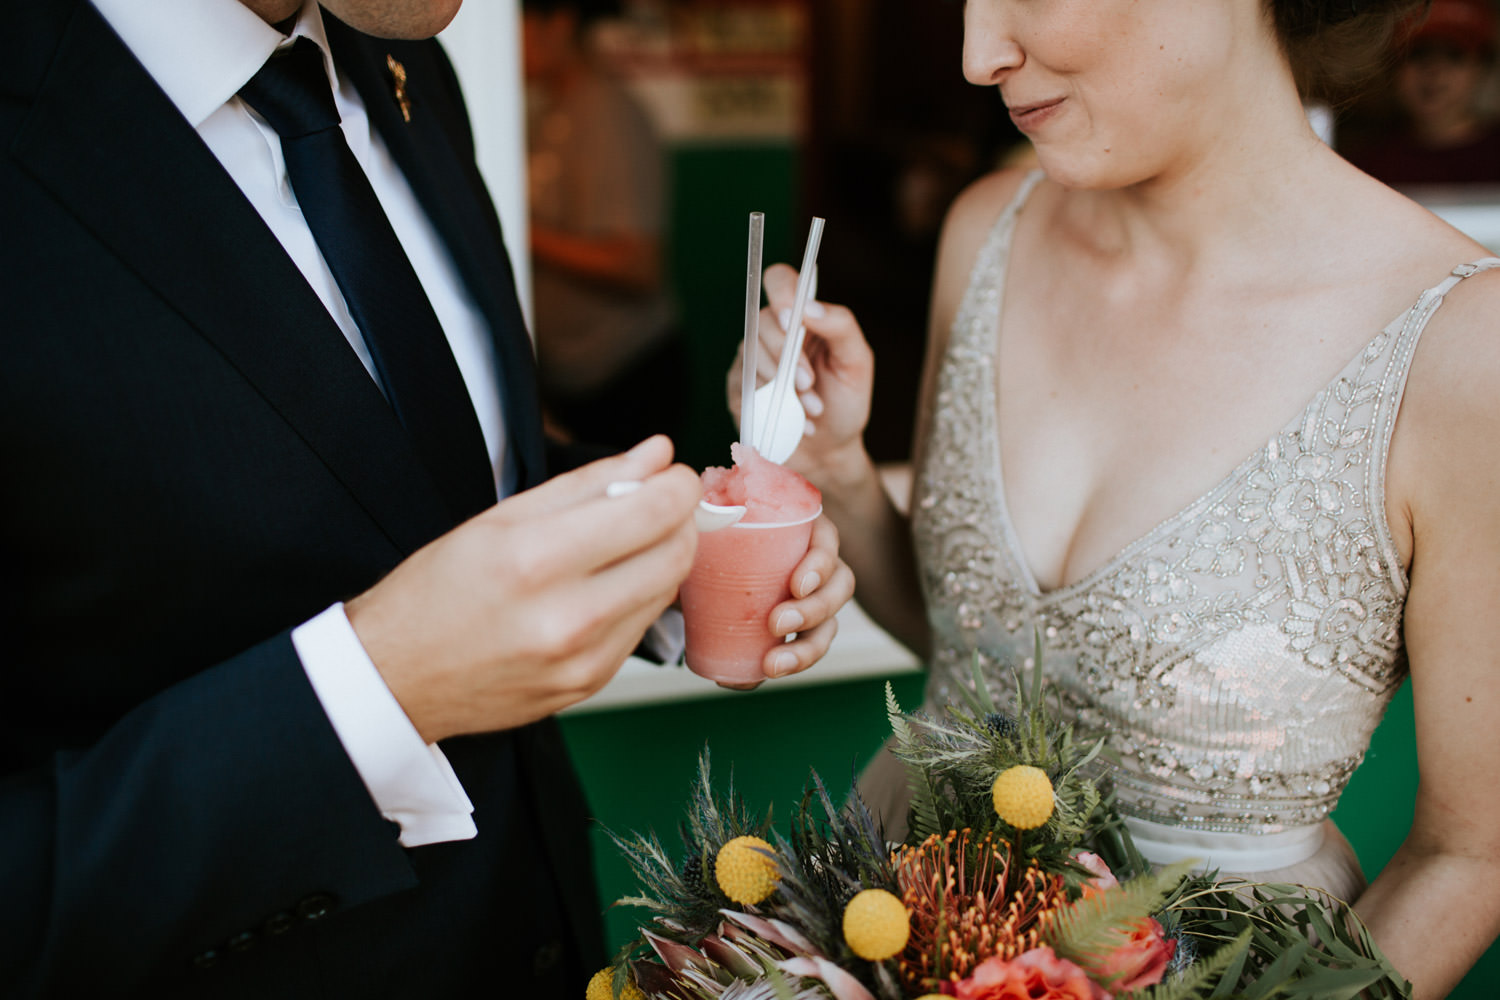 Bride and groom enjoyed Italian Ice at Marios Italian Lemonade stand. Picture take by Mark Trela